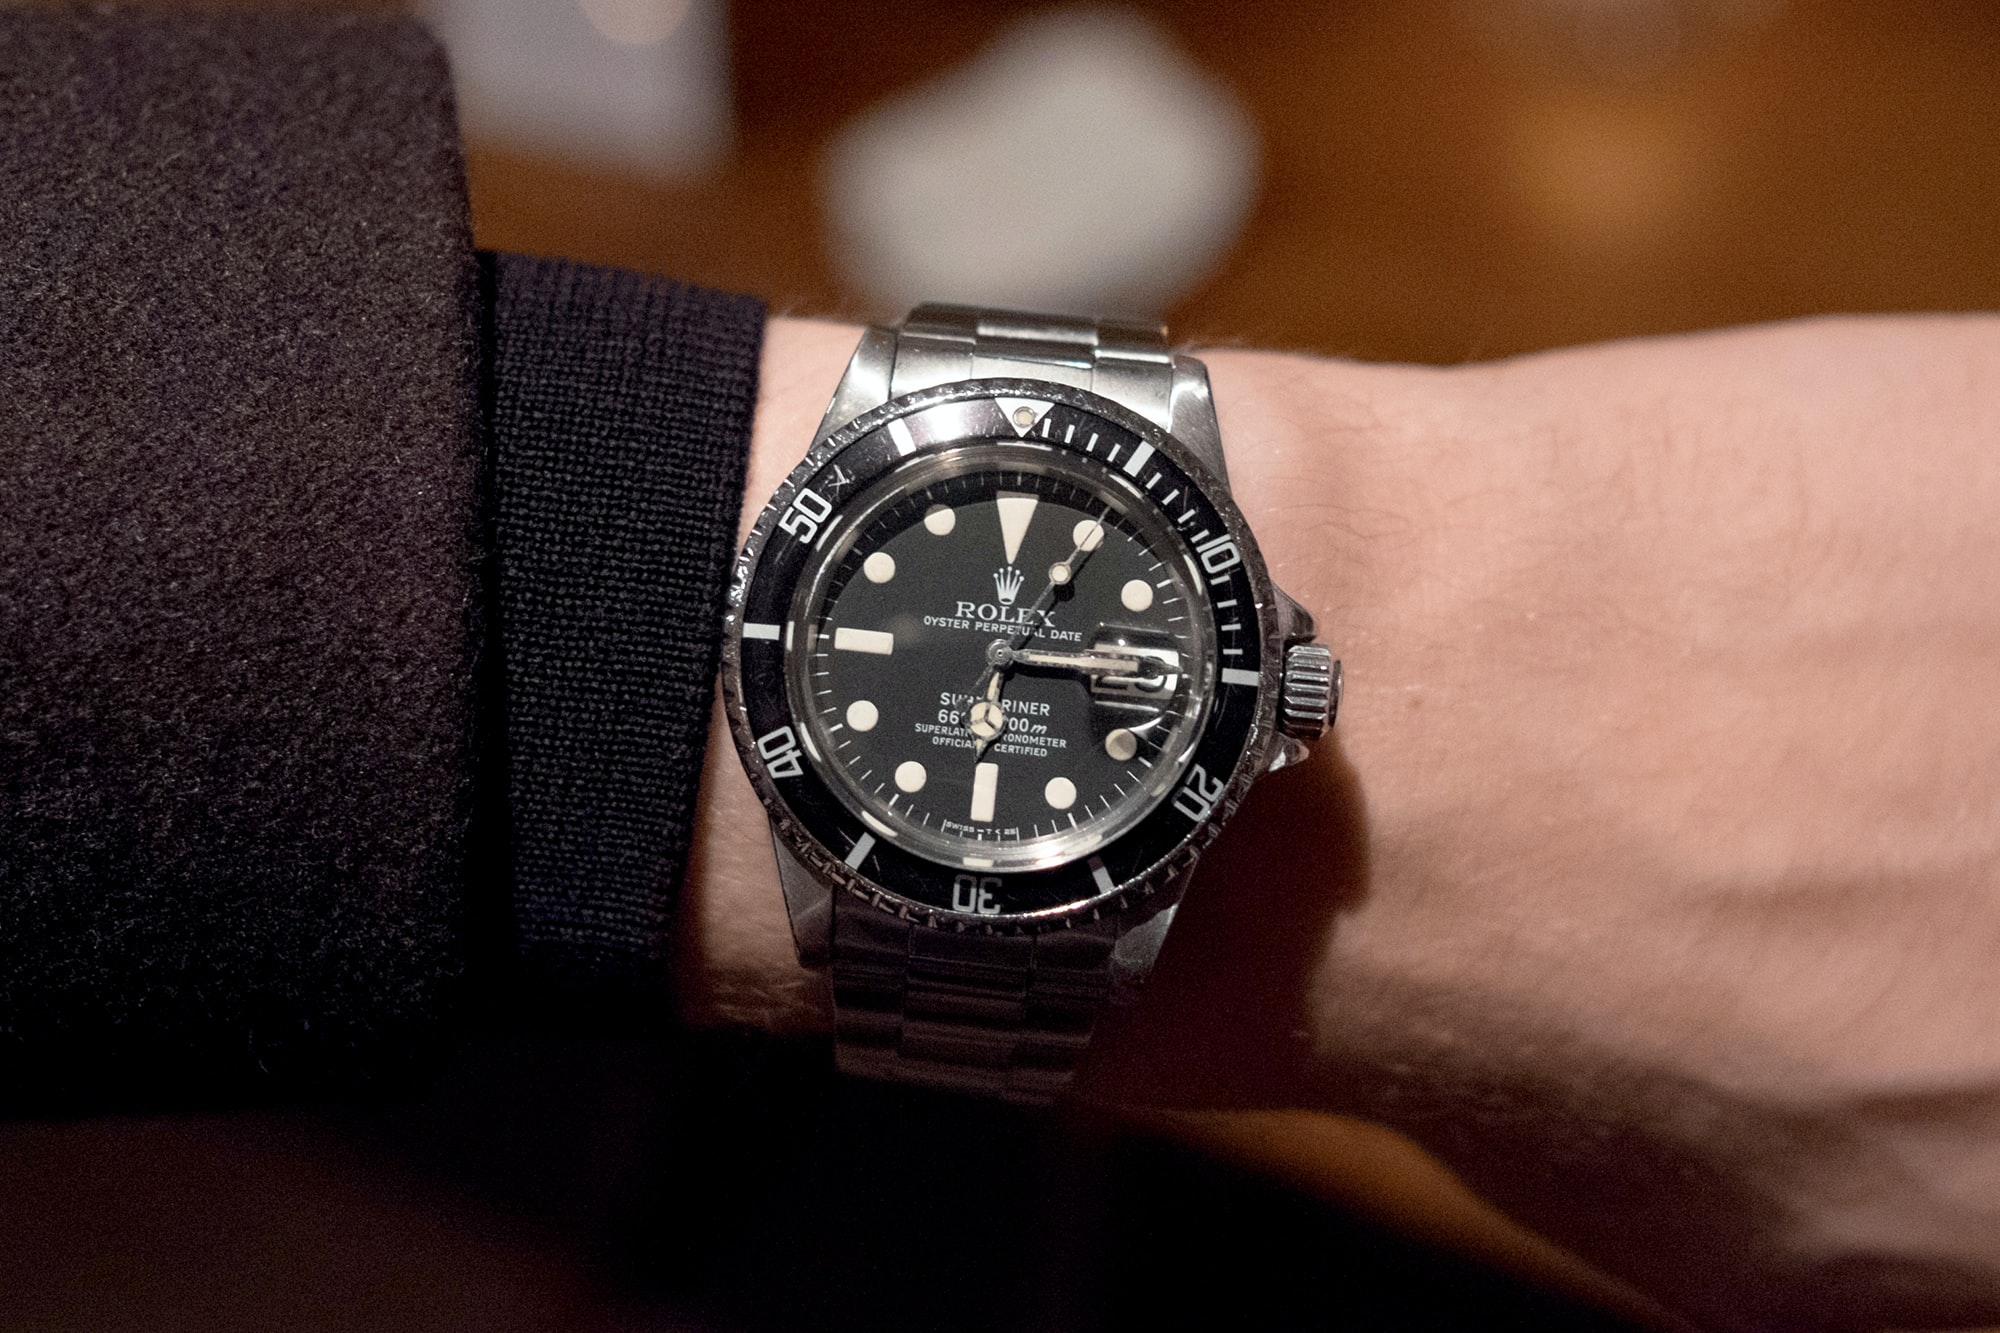 Photo Report: Watch Spotting At The HODINKEE Meet-Up In London (Plus Our Holiday 2016 Pop-Up At Harrods) Photo Report: Watch Spotting At The HODINKEE Meet-Up In London (Plus Our Holiday 2016 Pop-Up At Harrods) Hodinkee event 29 nov 2016 6